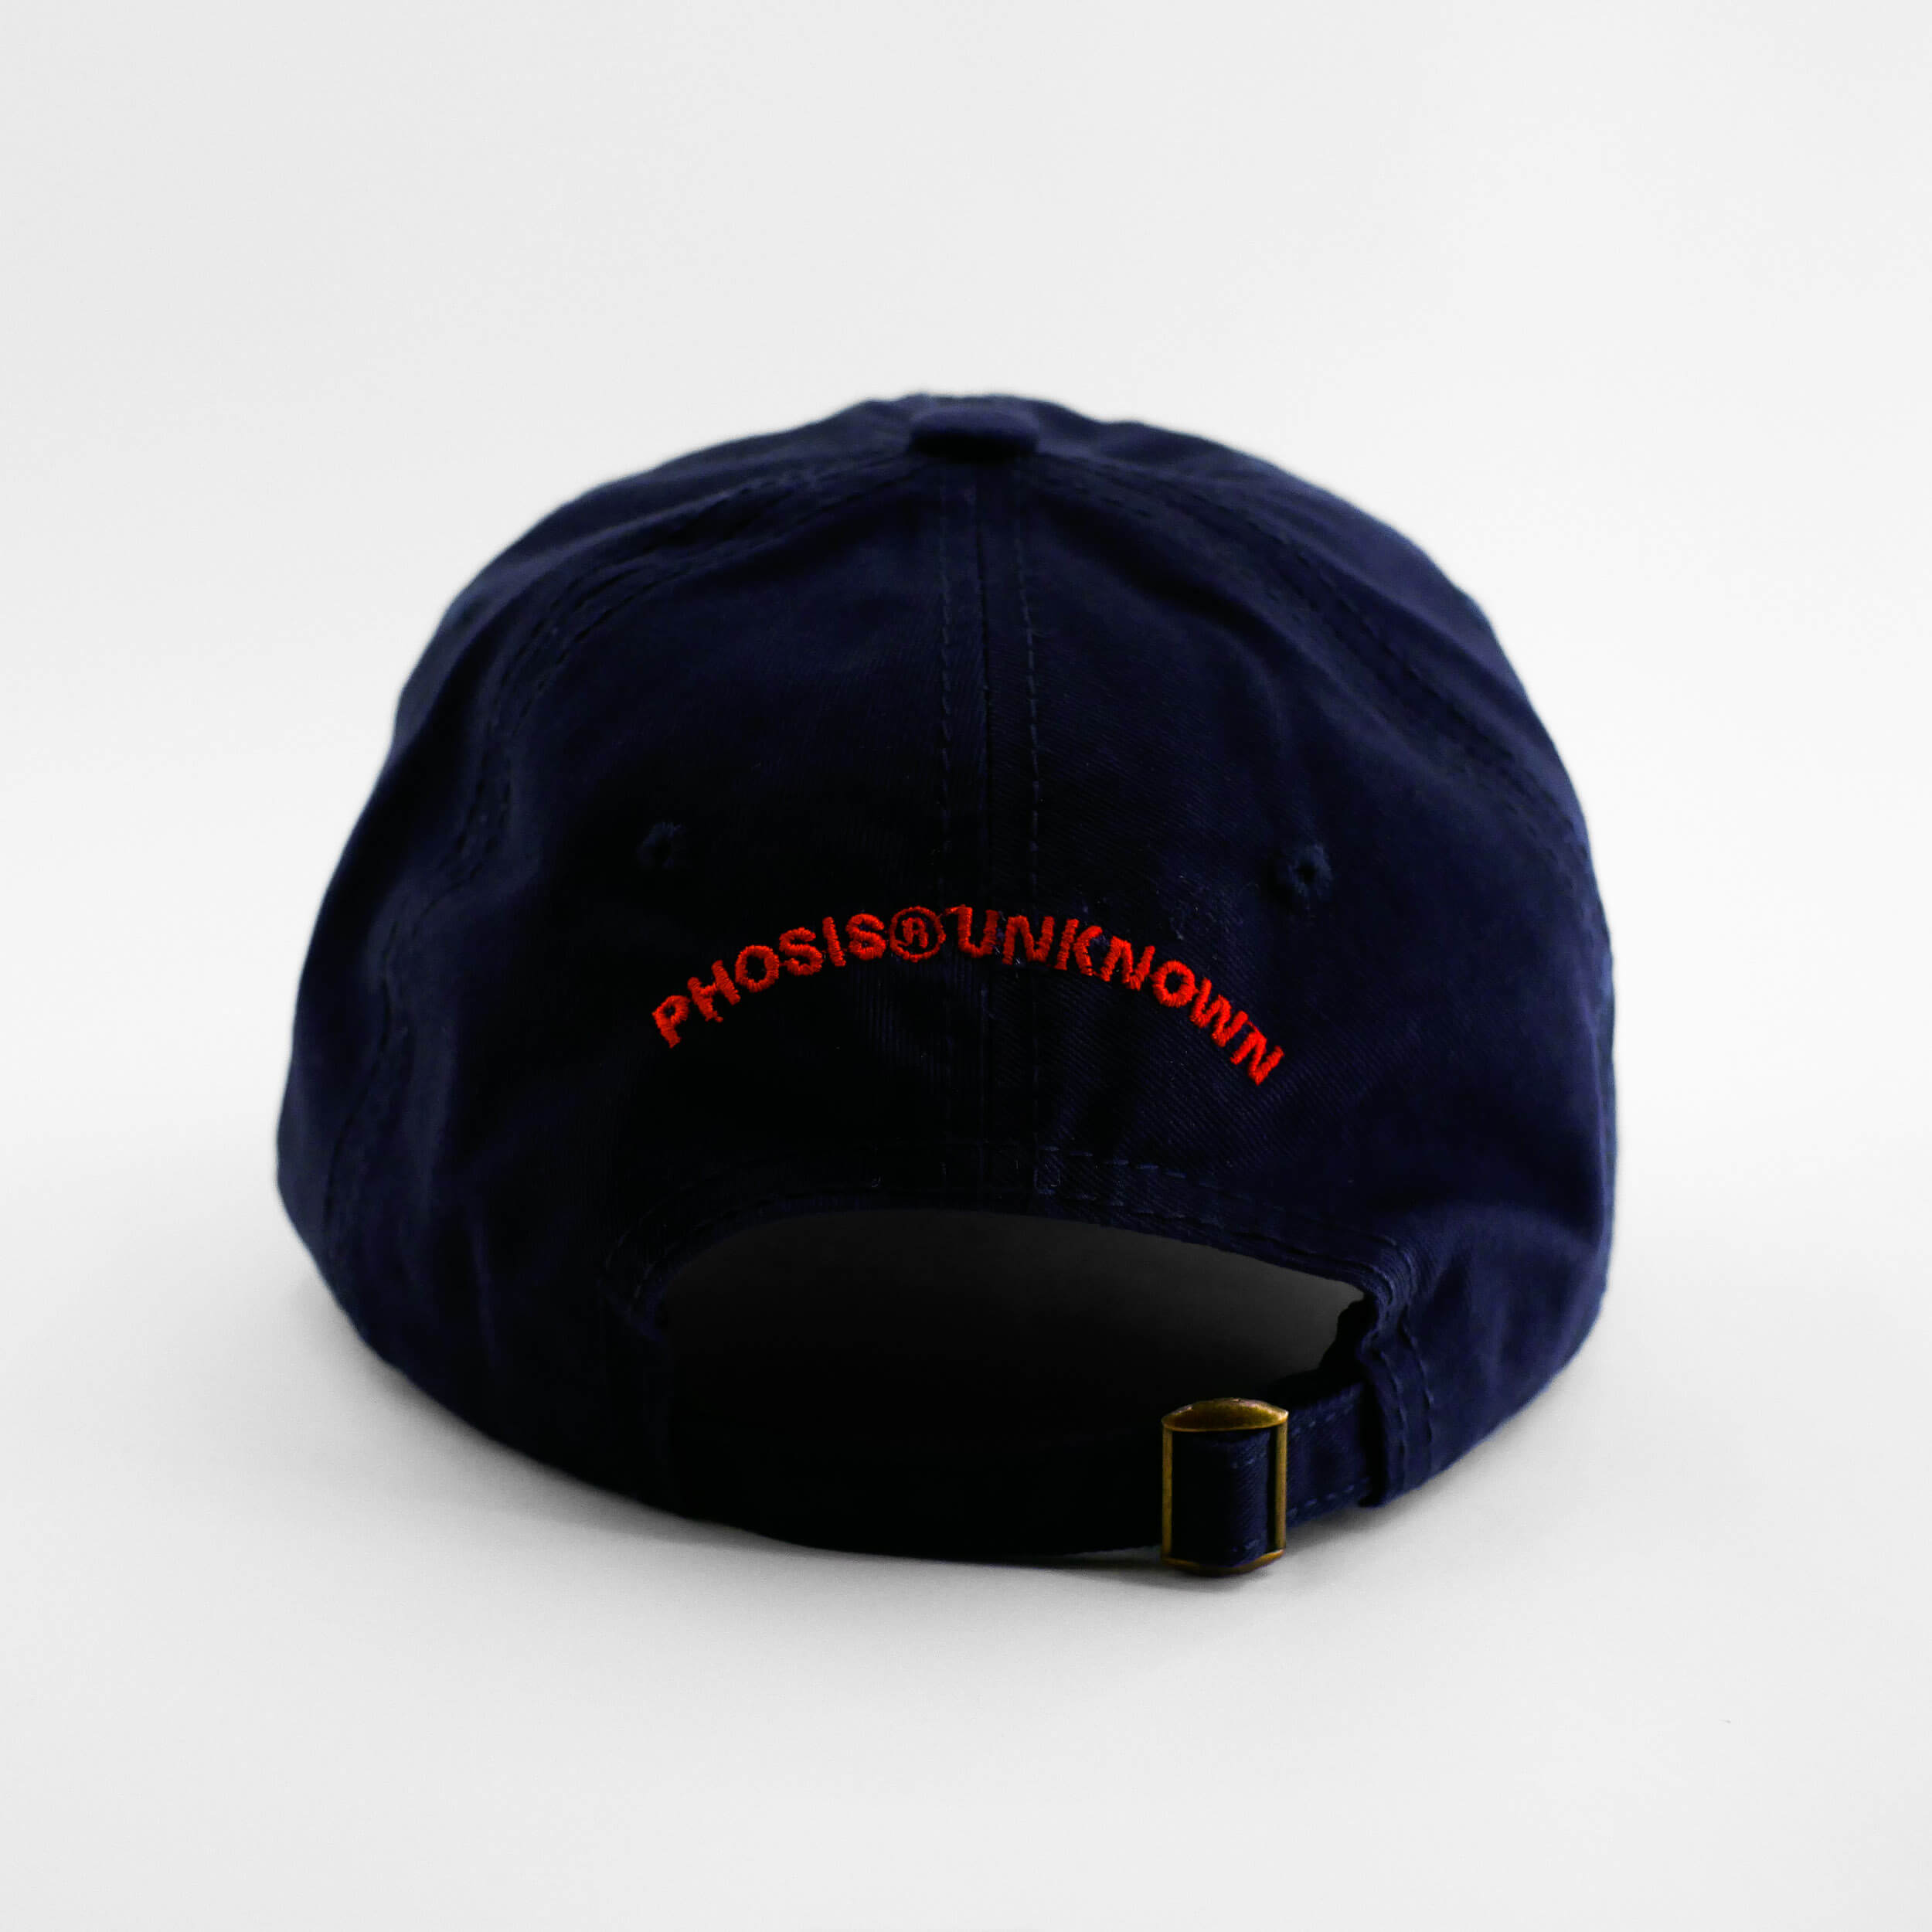 Back view of the embroidered ASCII Rose navy blue hat from PHOSIS Clothing